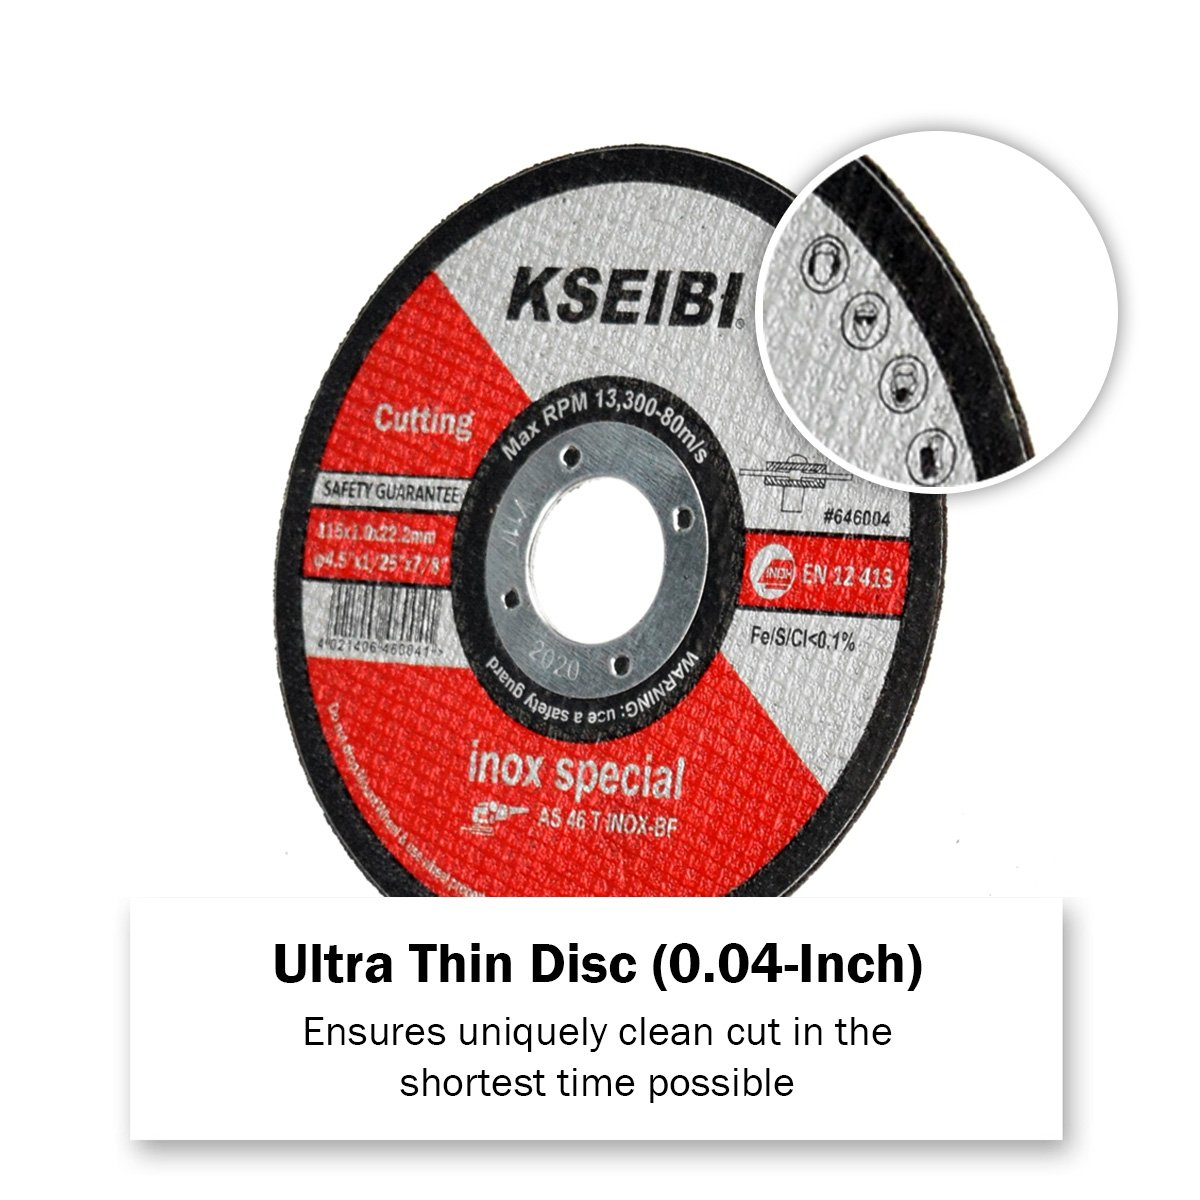 KSEIBI 50 Pack 646004 Angle Grinder Cut Off Wheels for Cutting Metal Stainless Steel 4-1//2x0.040x7//8 Type 41 Ultra Thin Disc